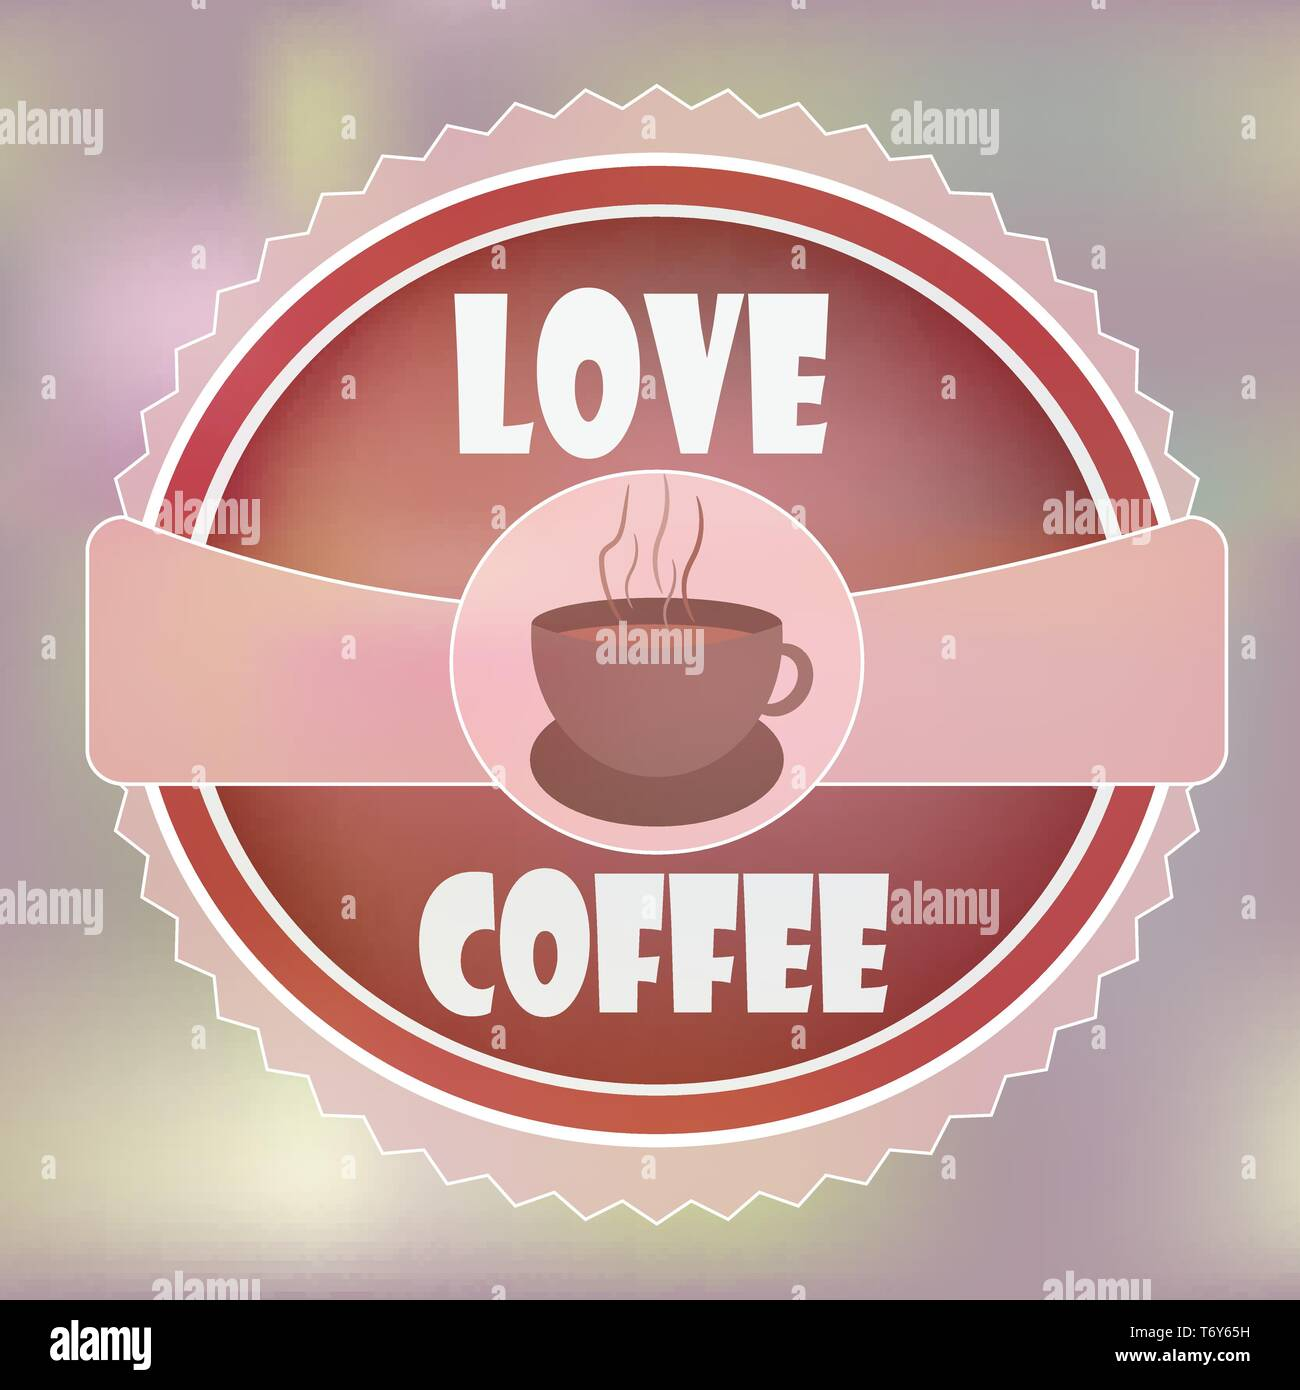 Vector Banner Banner For Restaurant Advertisements Morning Hot Drink Coffee In A Cup Of The Emblem On A Pink Background With The Inscription Love Stock Vector Image Art Alamy